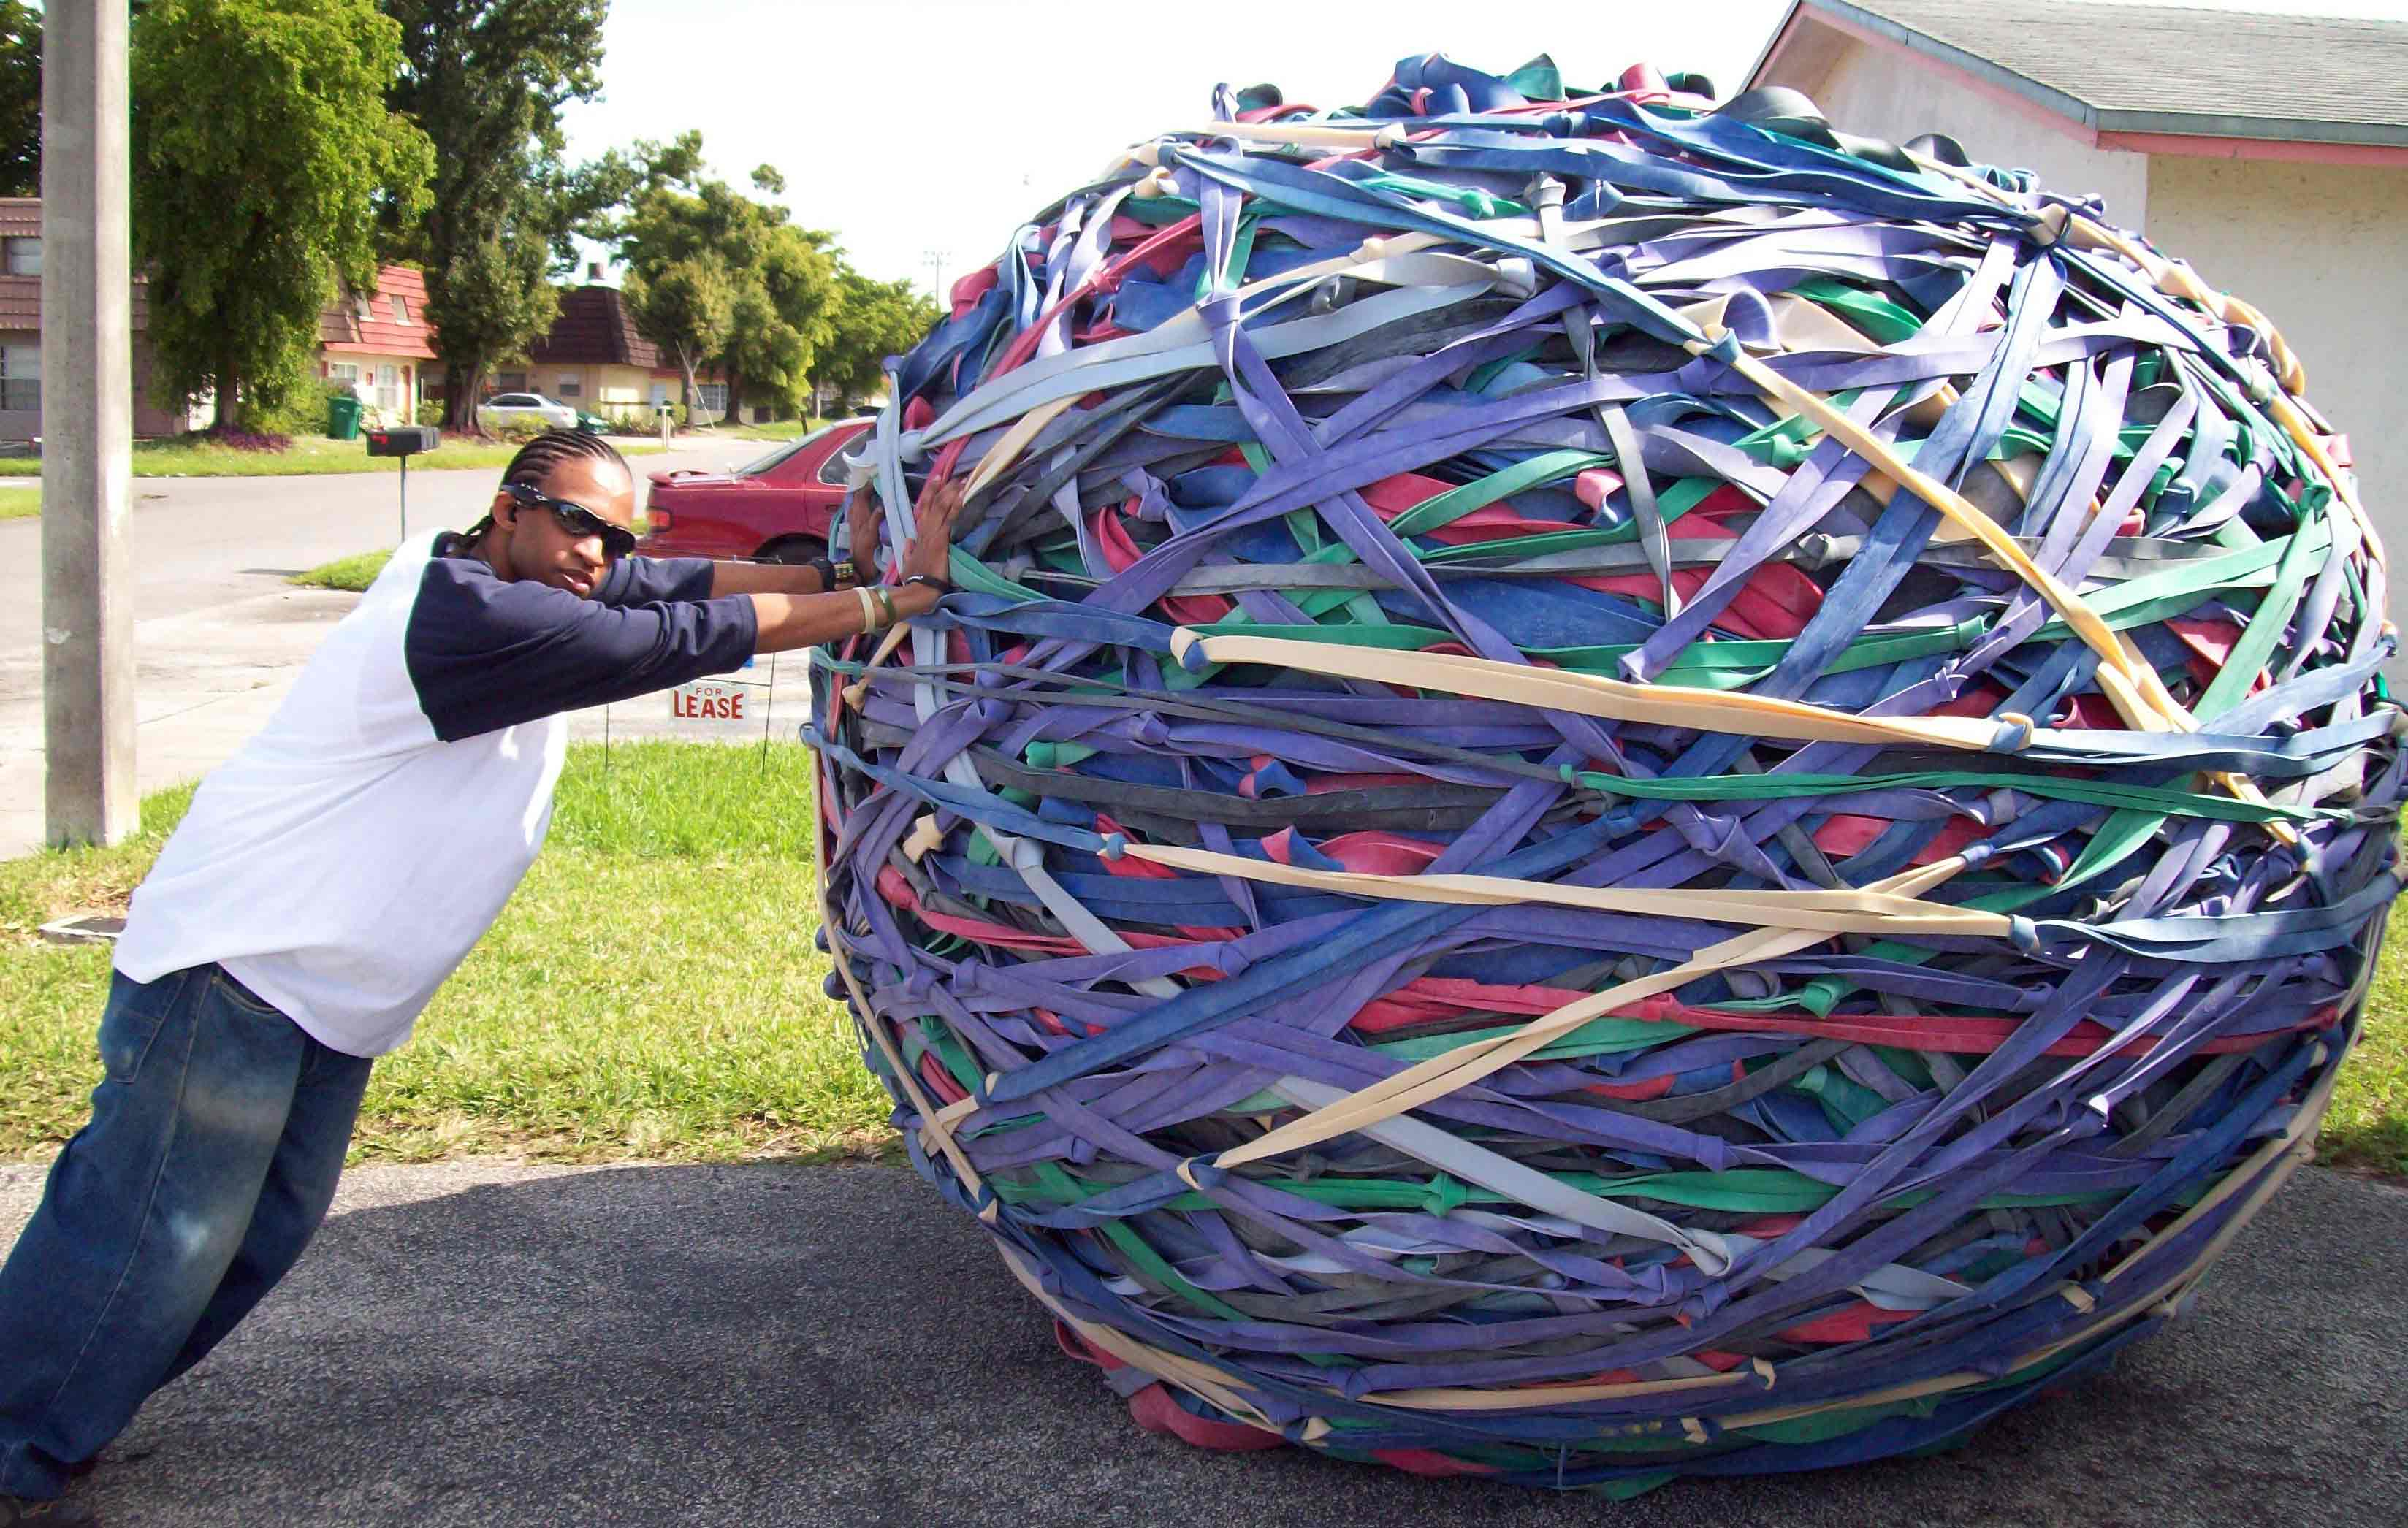 Largest rubber band ball